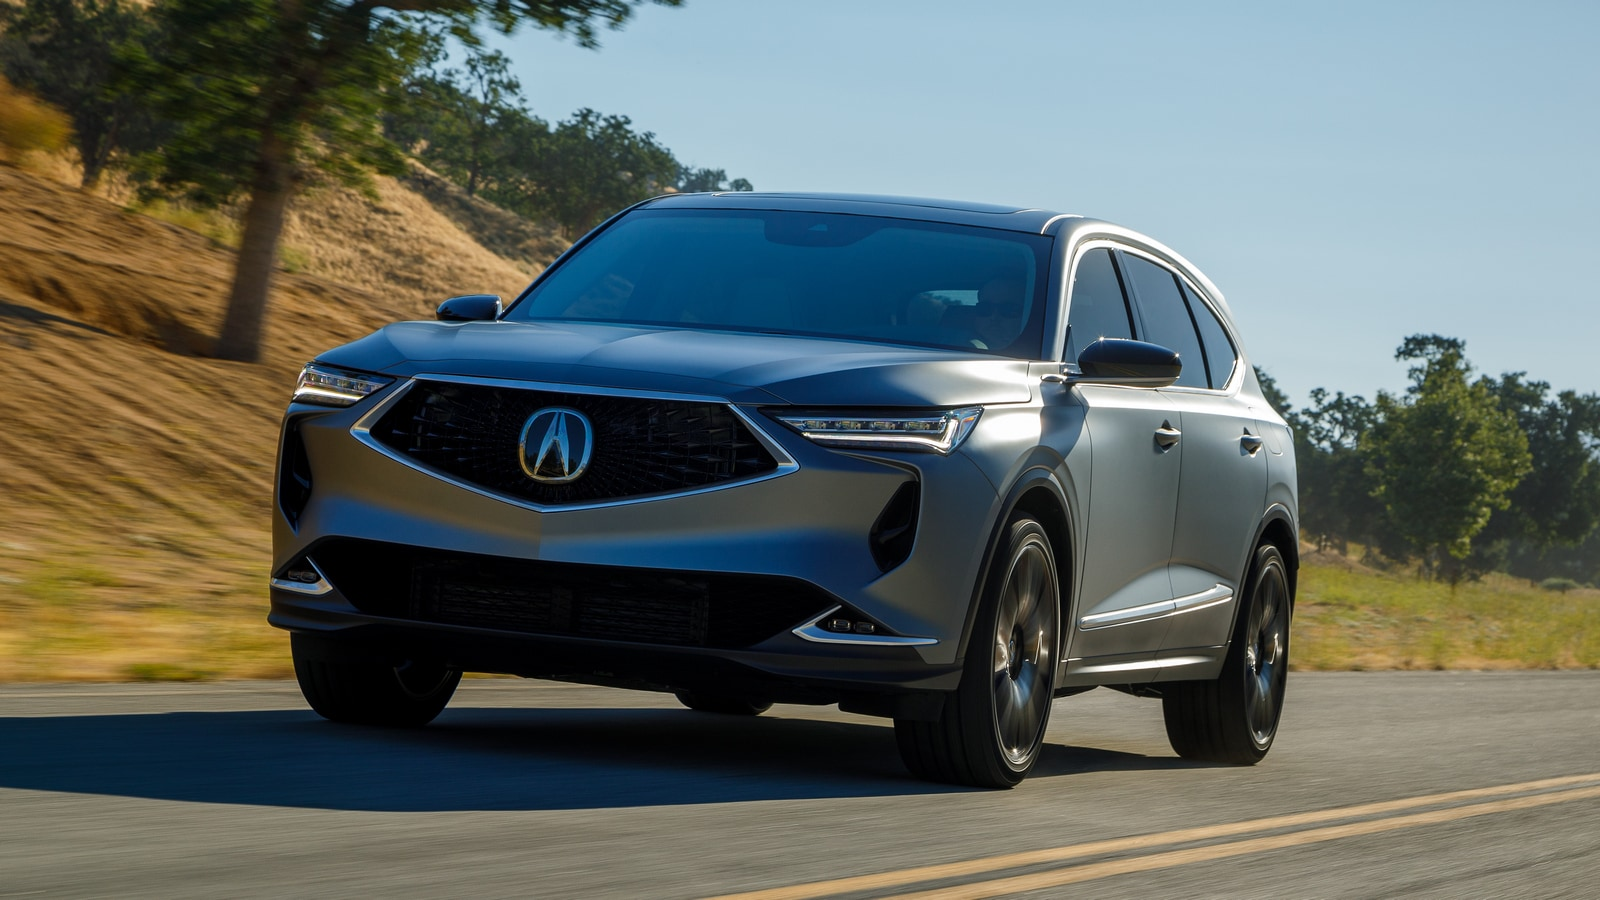 2022 Acura MDX: First Look